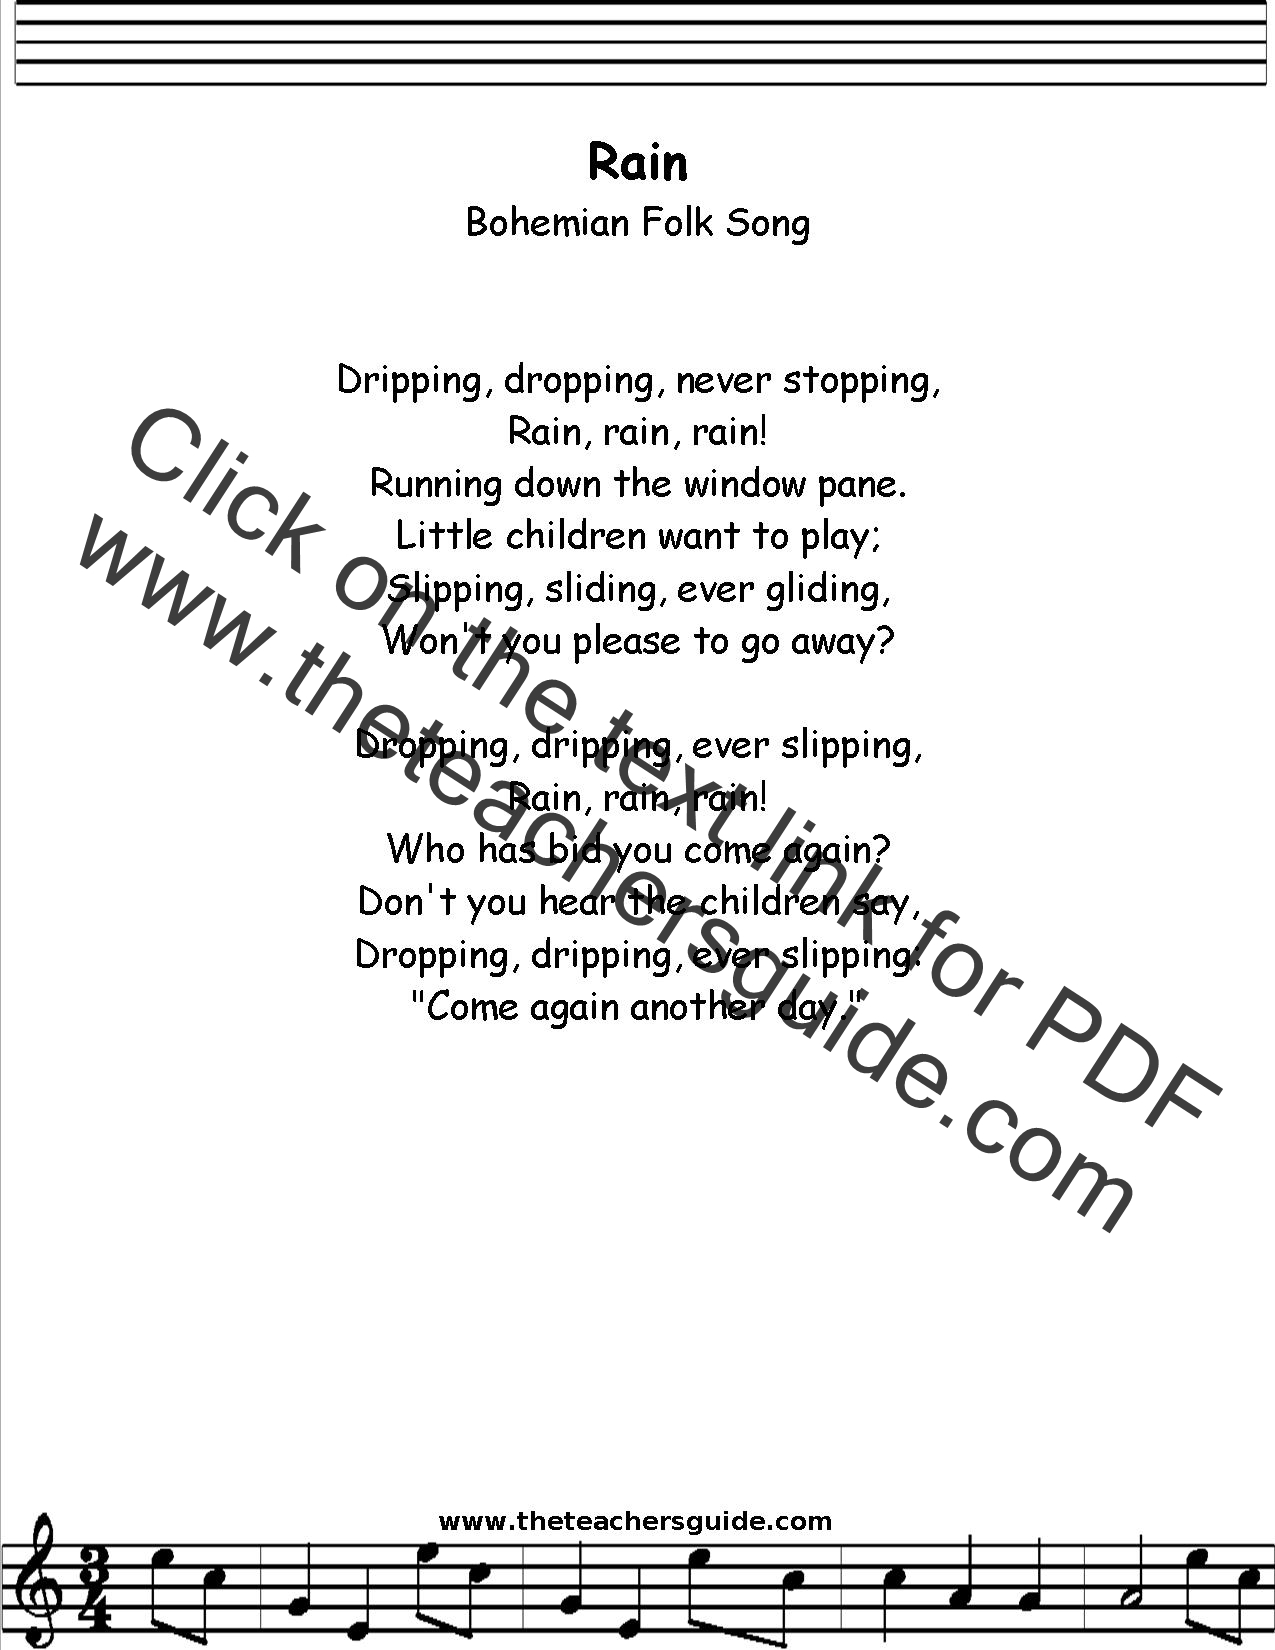 Rain Bohemian Folk Song Lyrics Printout Midi And Video